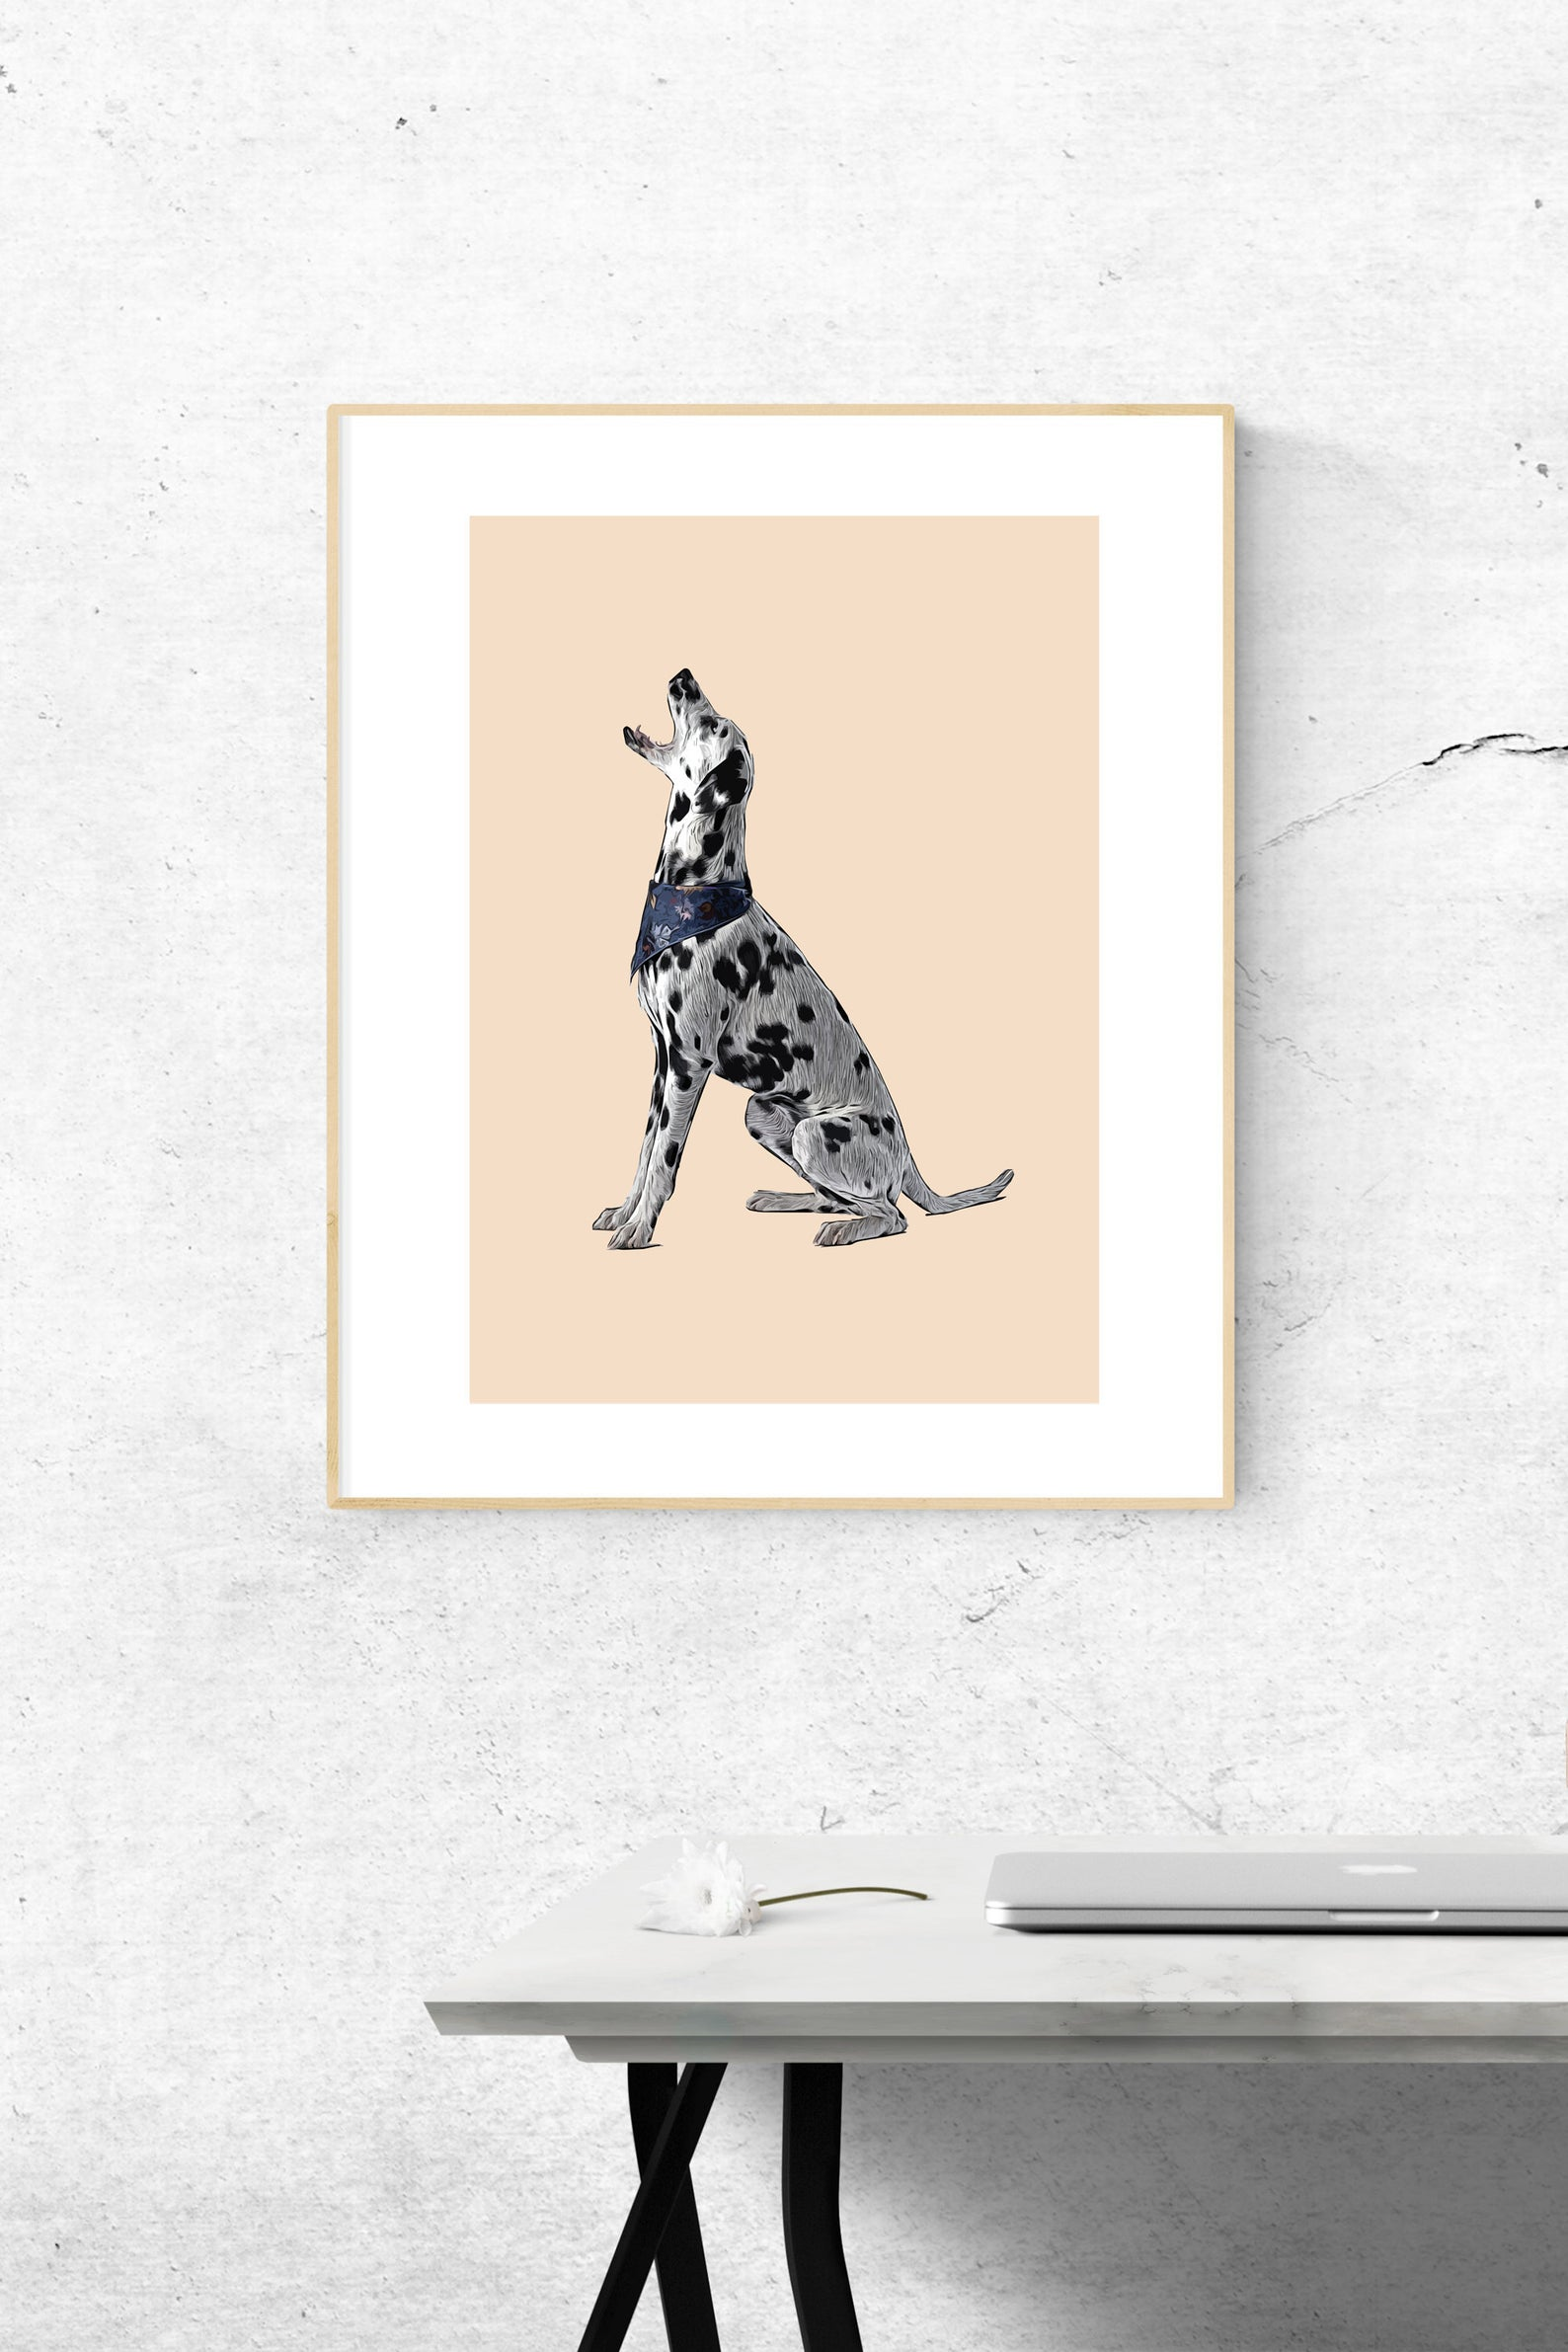 25+ Gorgeous Dalmatian Gifts for Her - Premium Matte Dalmatian Poster Print via FuzzyGiftCo on Etsy.